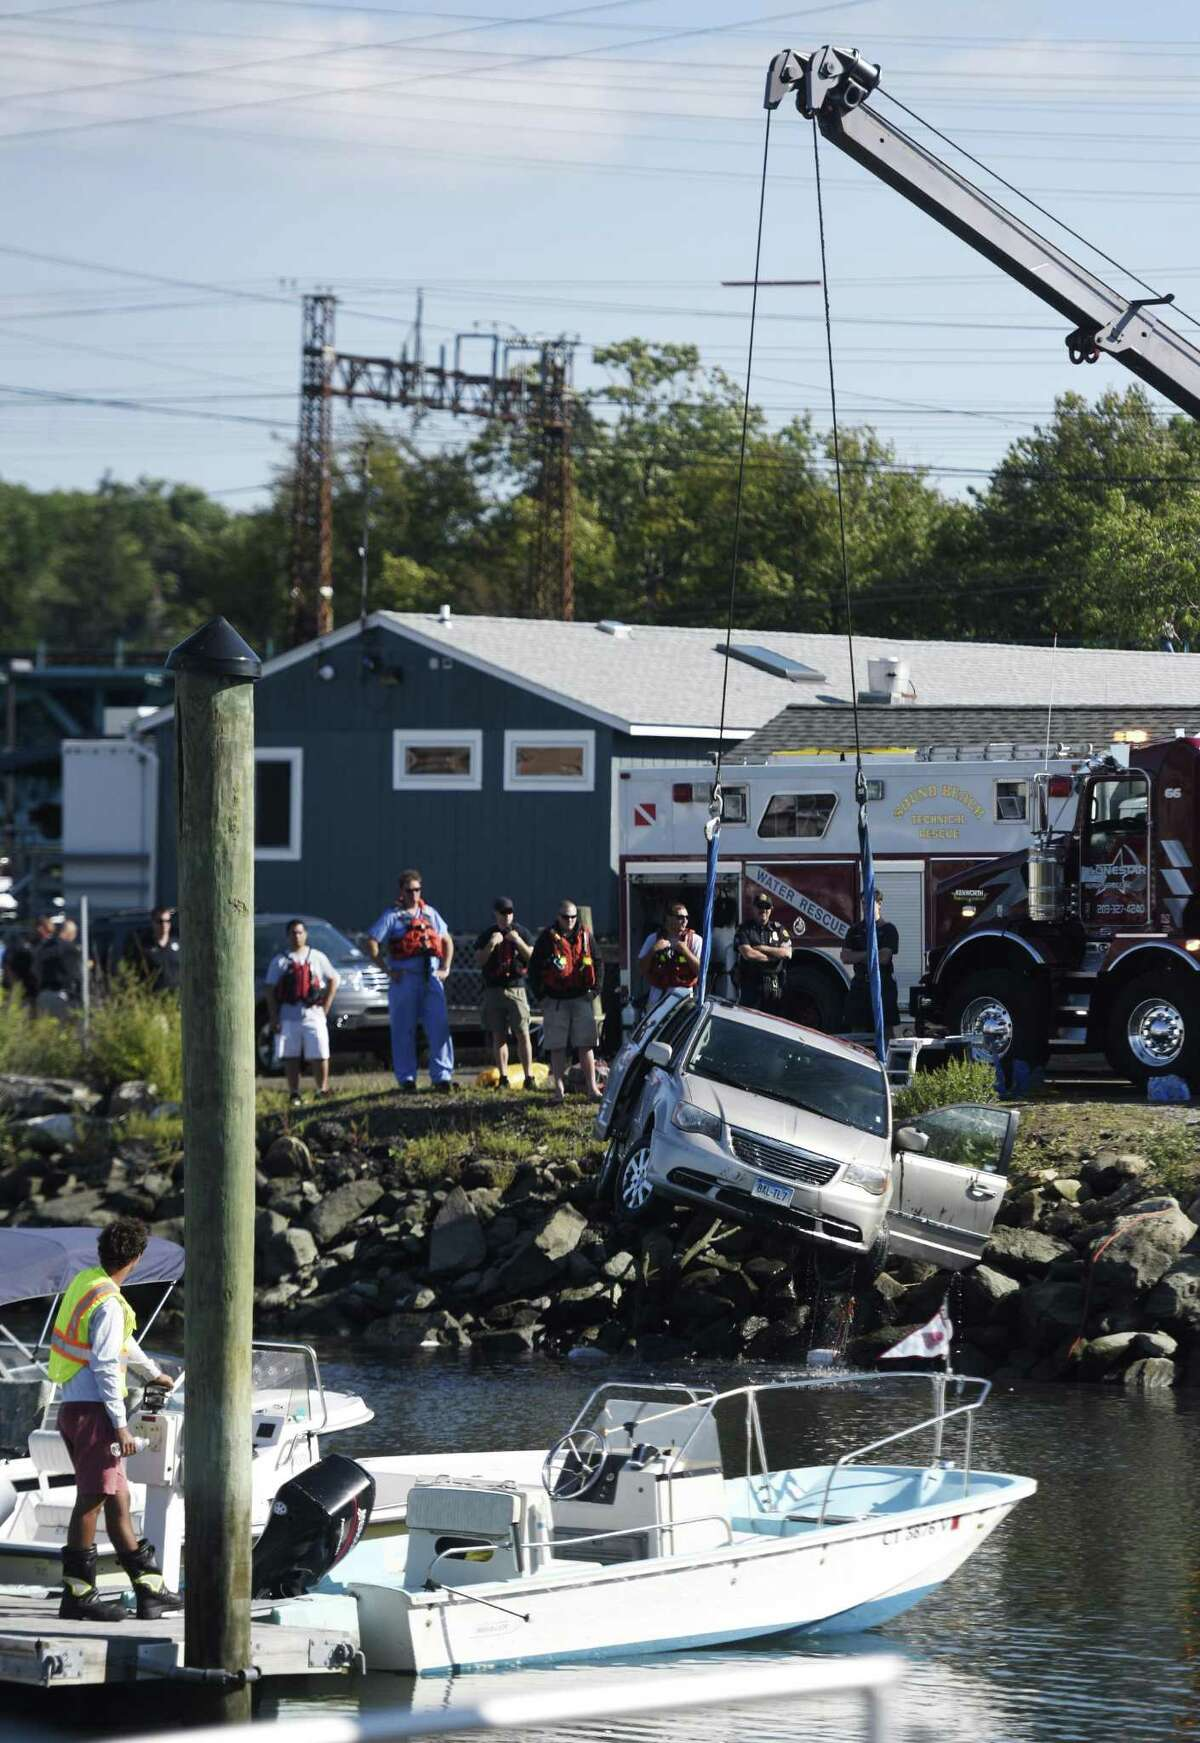 Crews pull a capsized vehicle from Cos Cob Marina in the Cos Cob section of Greenwich, Conn. Monday, Sept. 14, 2015. A New York man in his 80s died after his car fell into the harbor at the marina. Greenwich EMS, fire and police were called to attempt a water rescue, but the man was prounced dead at the scene.